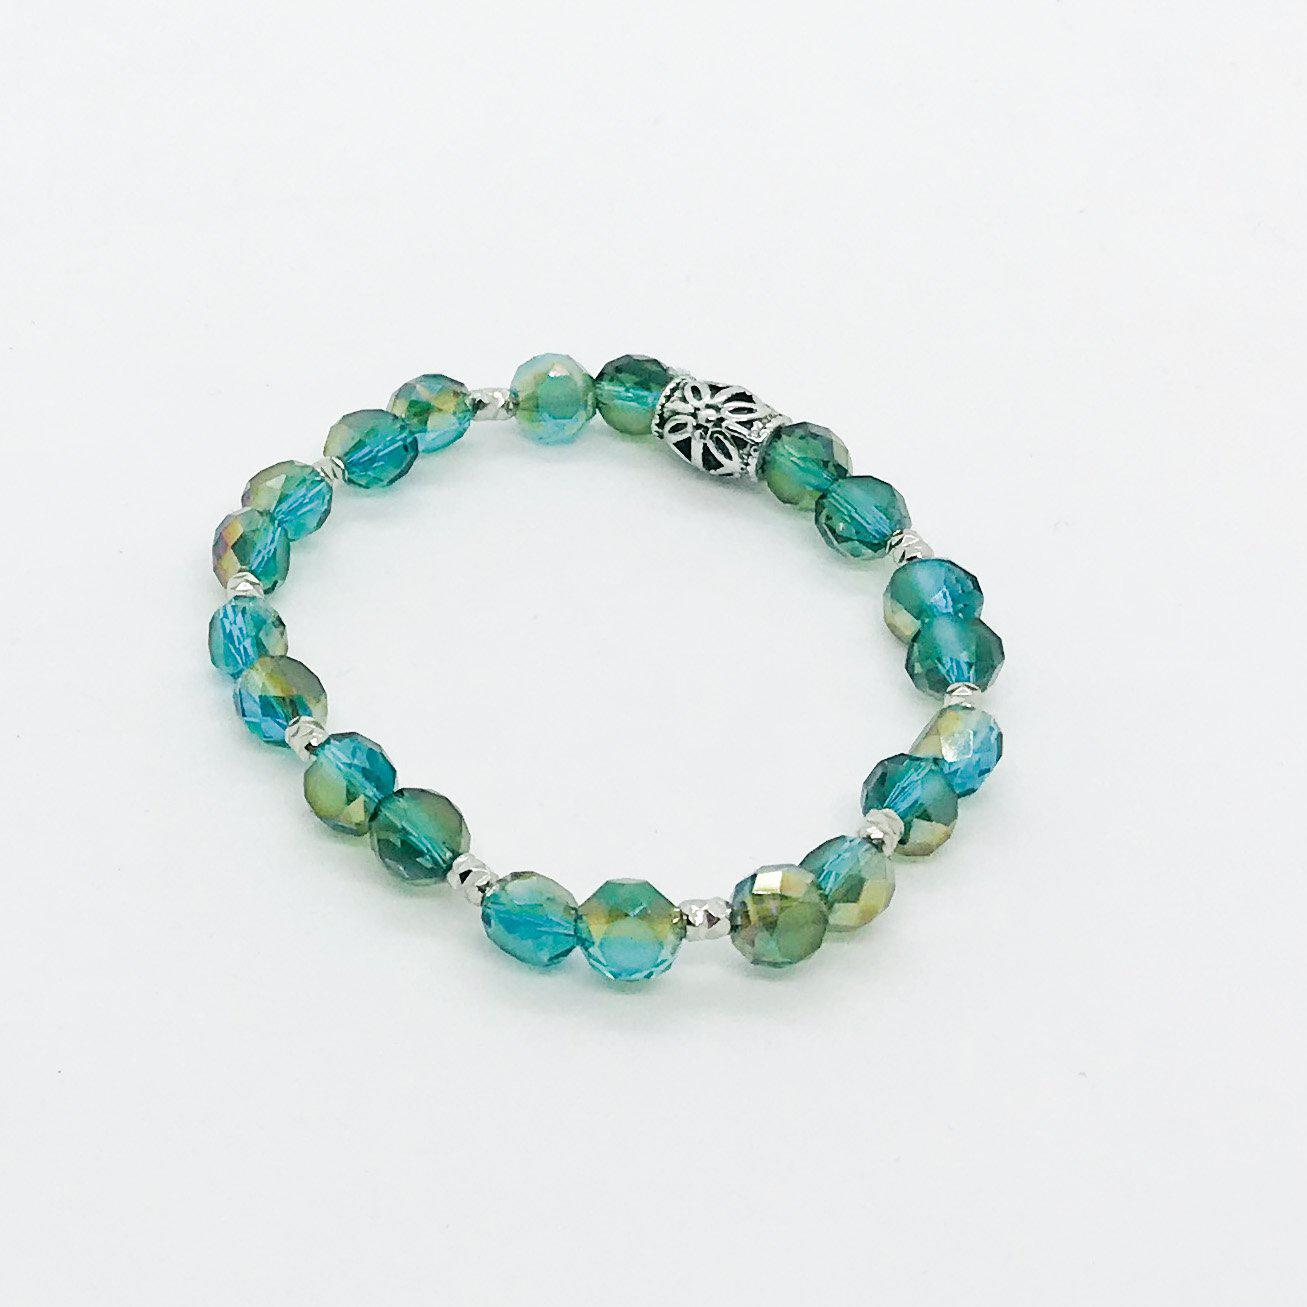 Glass Bead Stretchy Bracelet - B1068